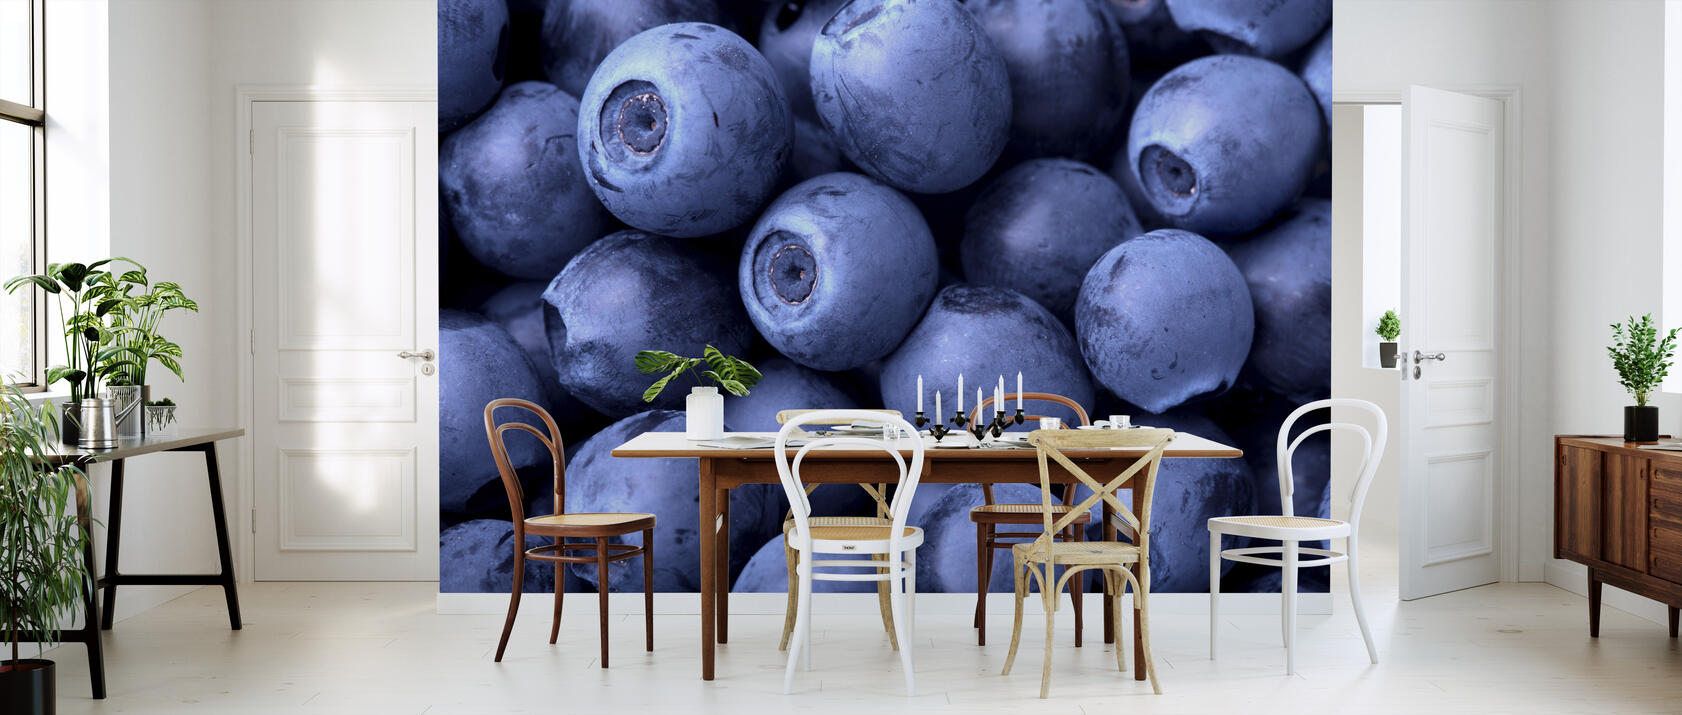 blueberries fototapete nach ma photowall. Black Bedroom Furniture Sets. Home Design Ideas